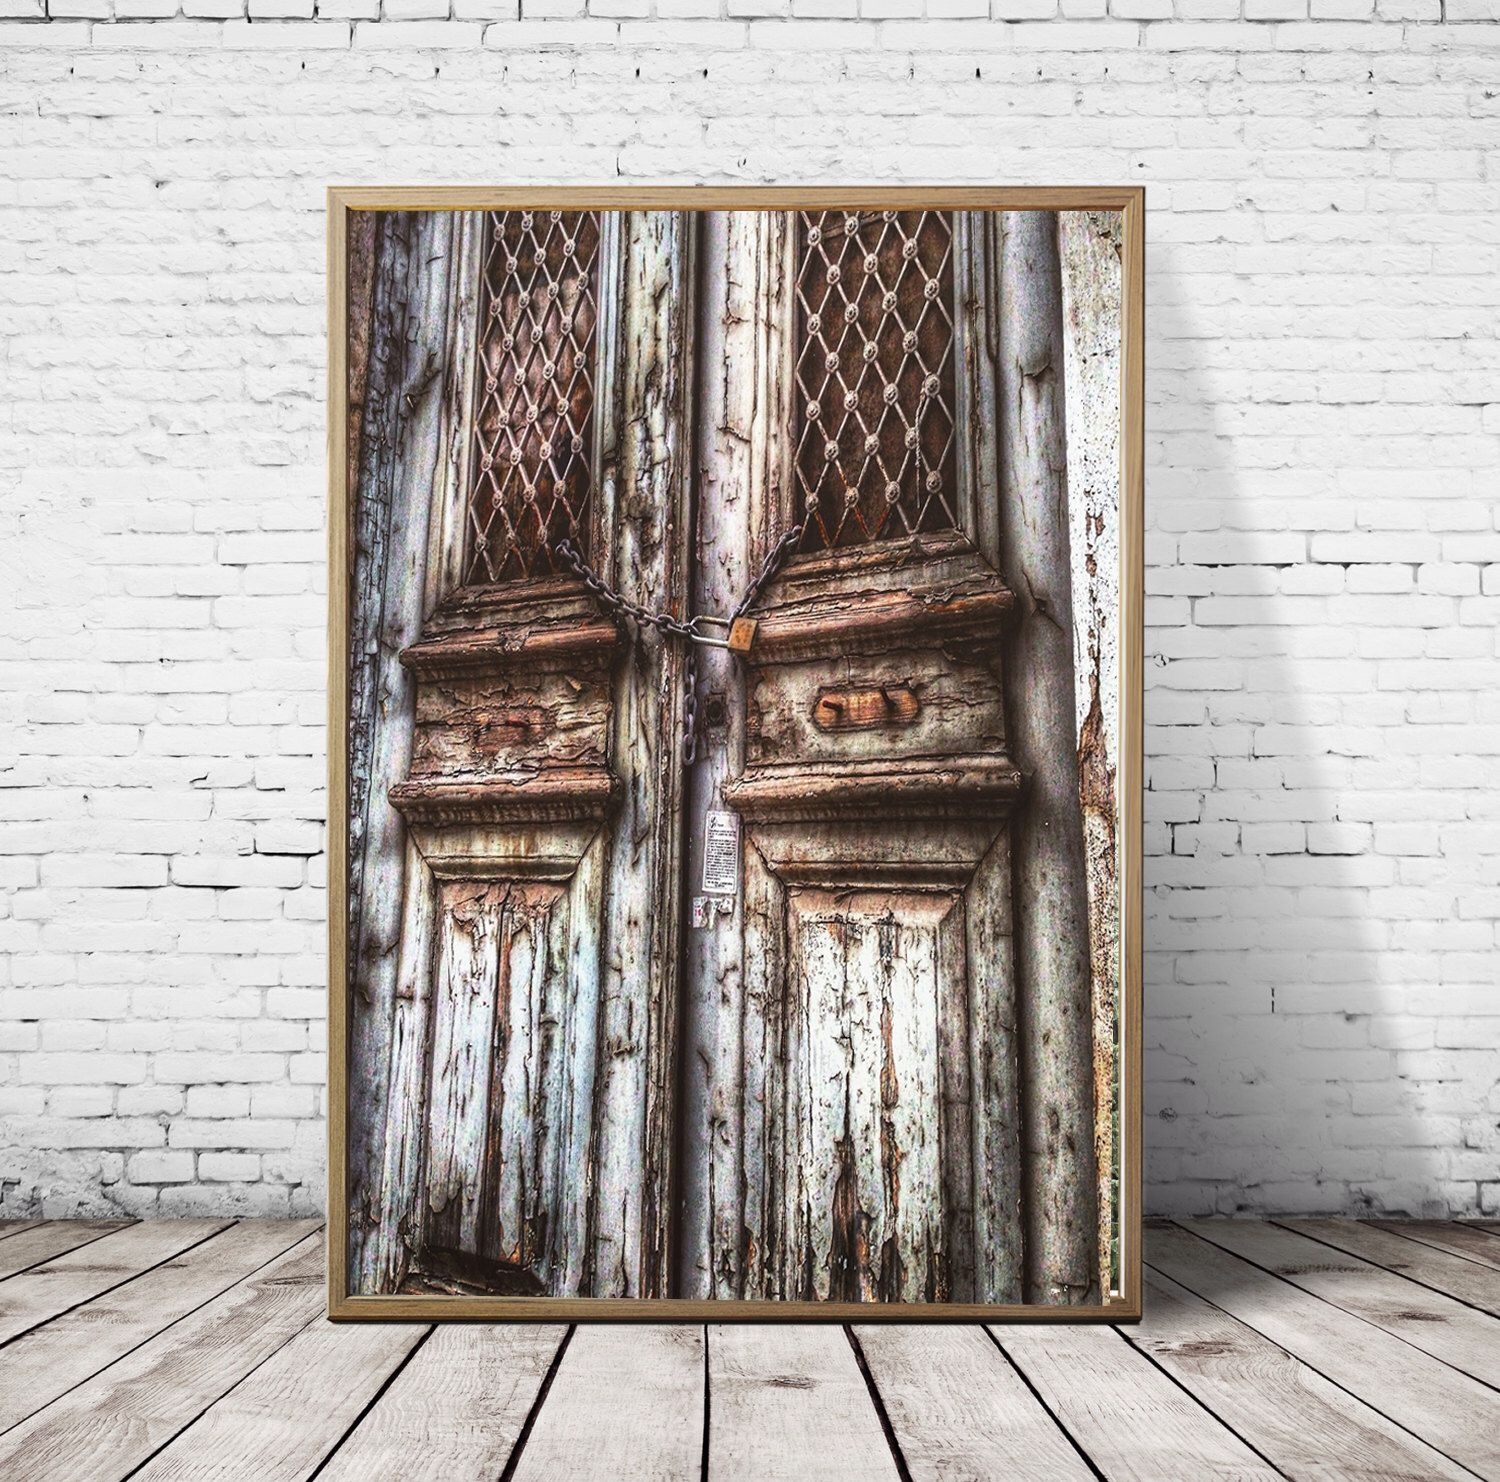 Rustic Door photography Greece print Wooden Door wall art vintage lock  photography door wall decor athens doors fine art print or digital by S4StarSbySiSSy on Etsy https://www.etsy.com/ca/listing/294888331/rustic-door-photography-greece-print